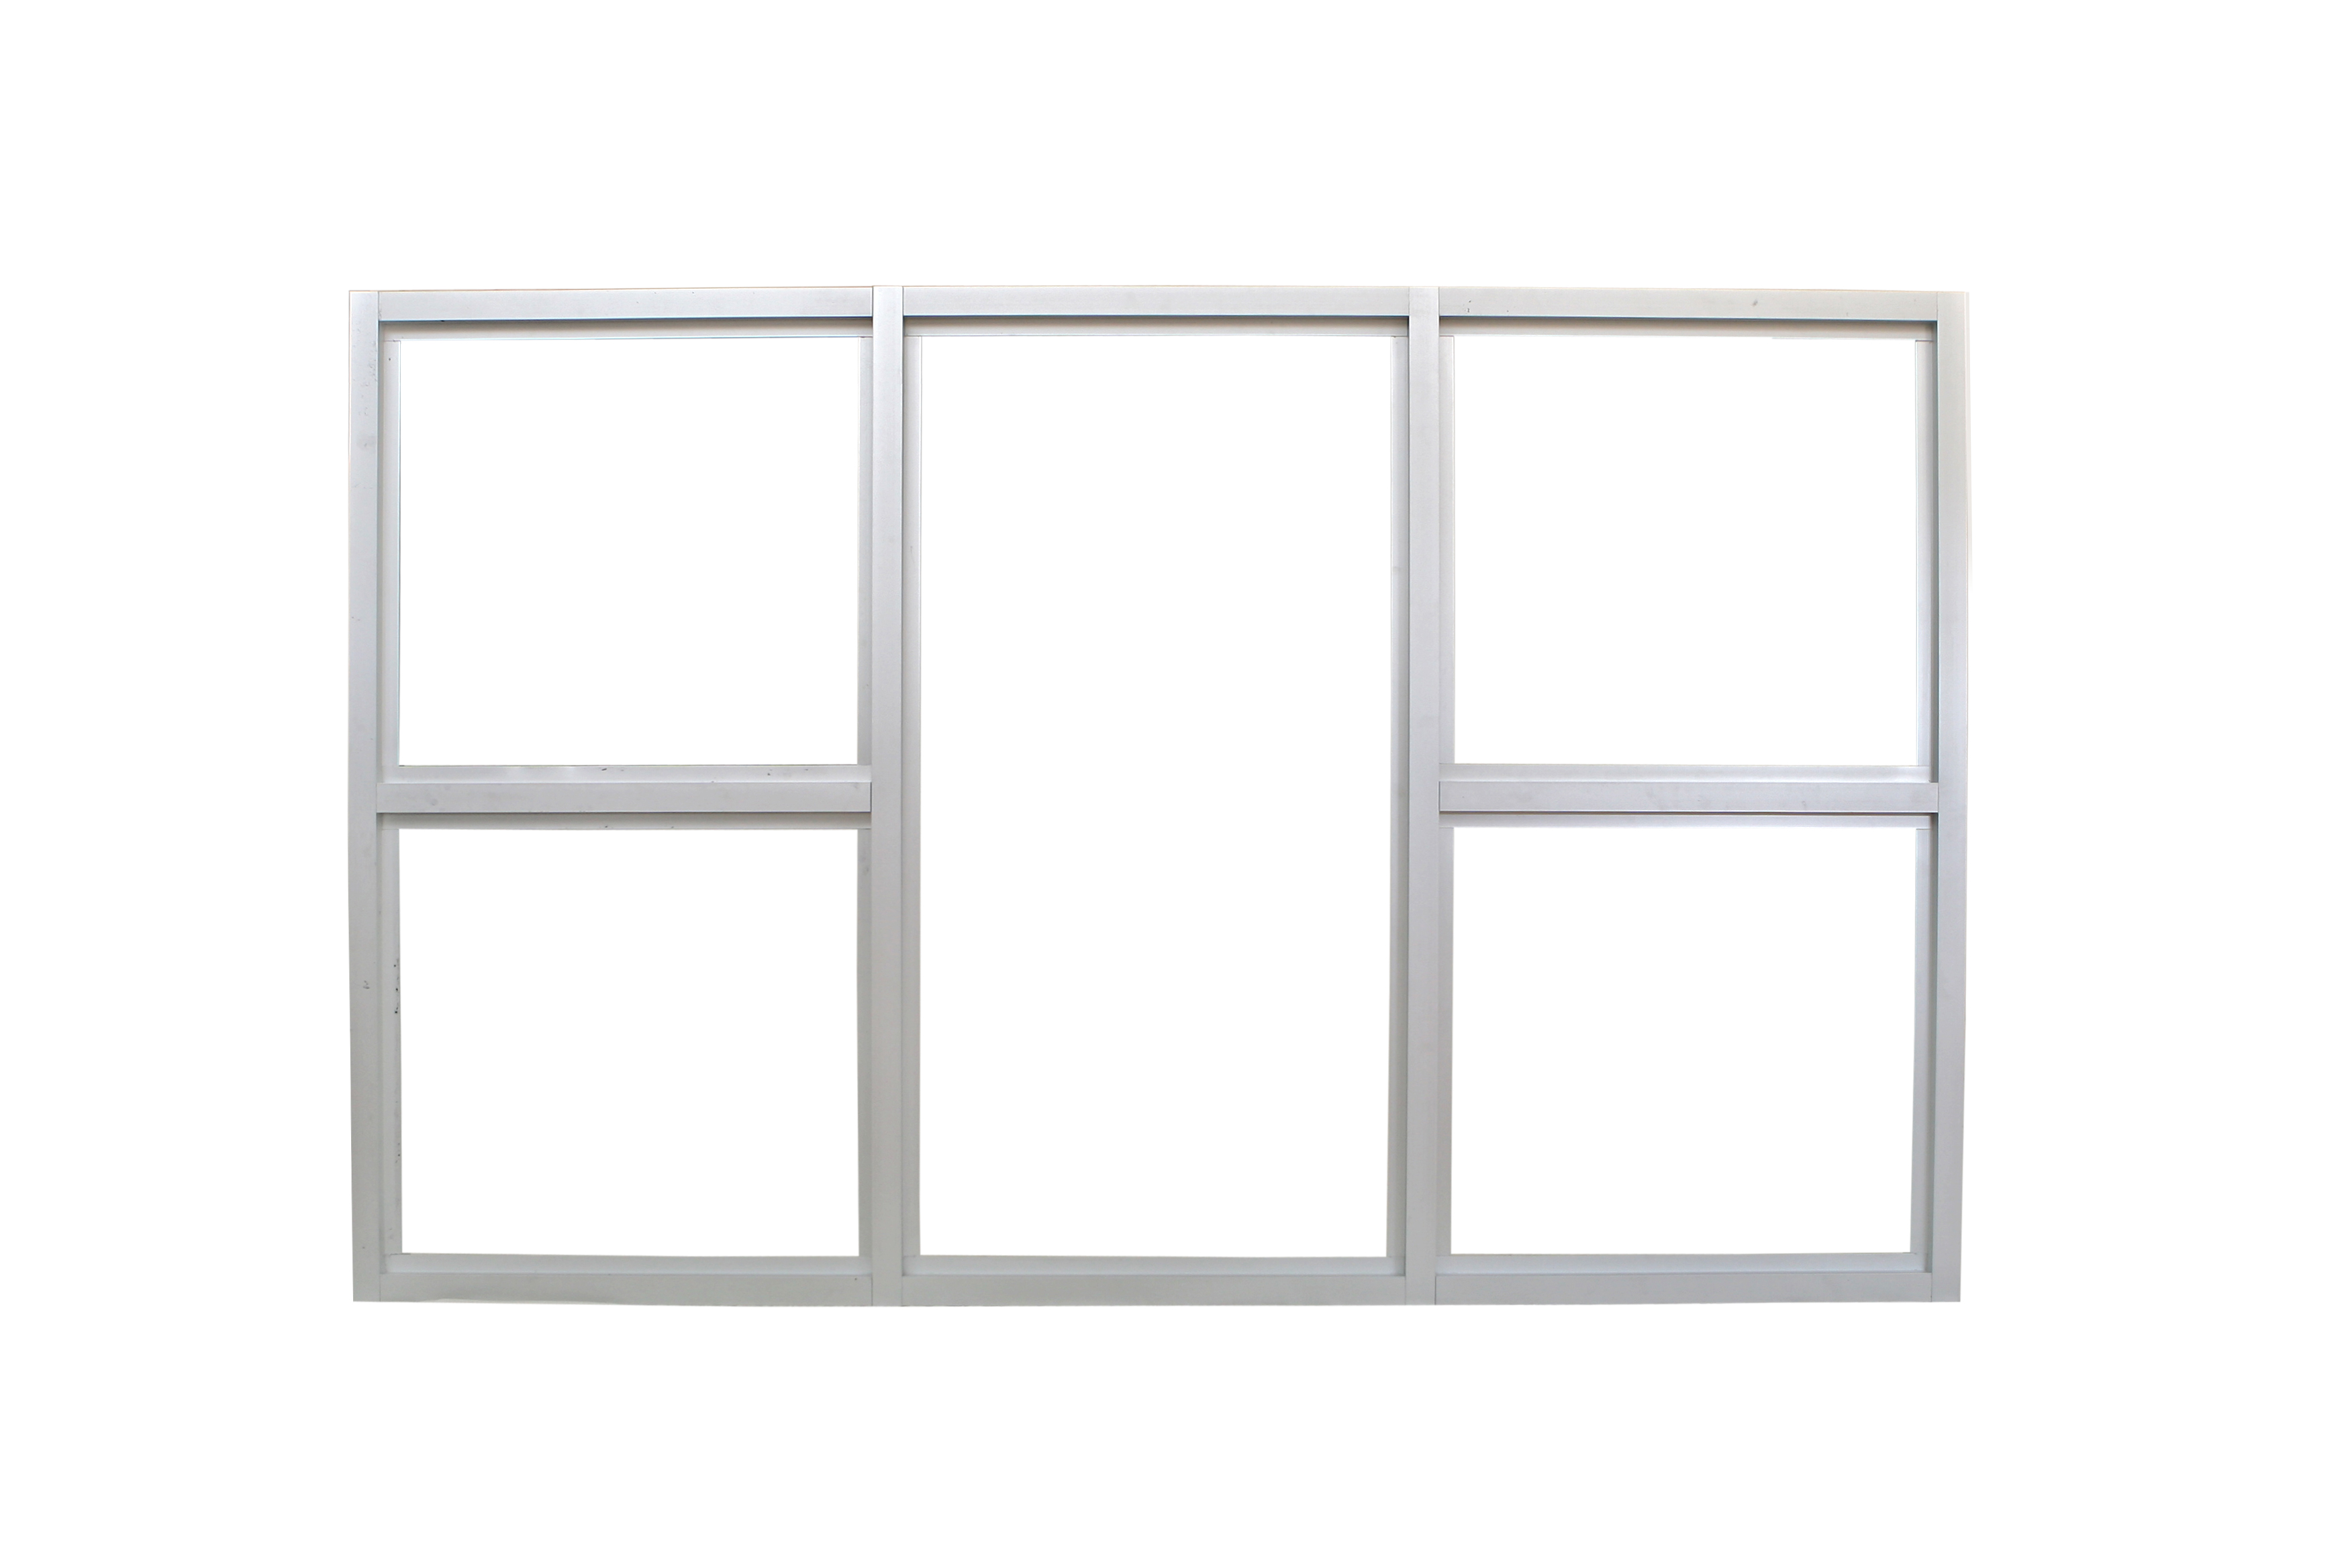 Window System SS3500 Storefront Picture Impact Resistant Windows ...